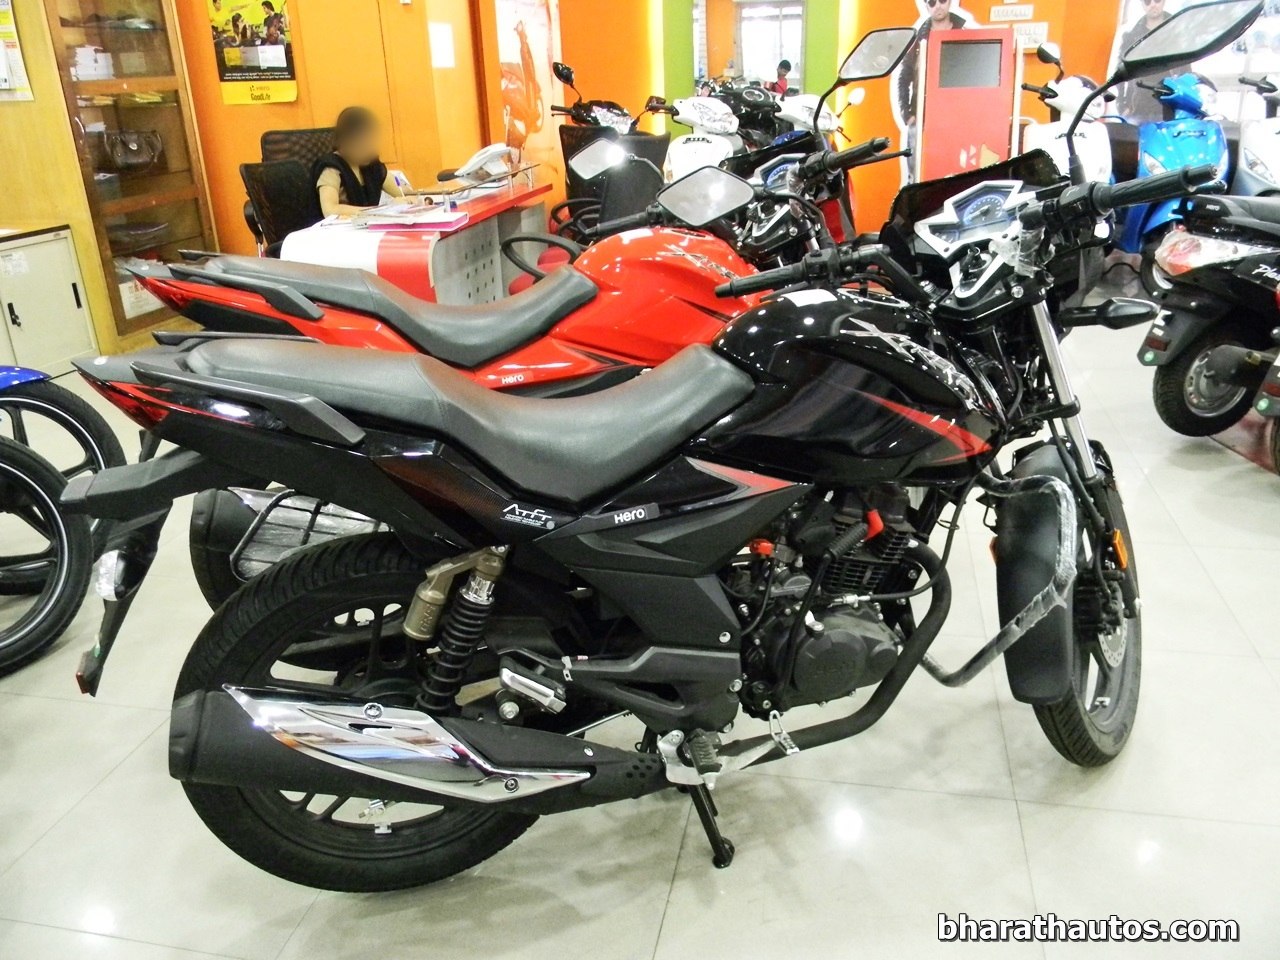 2014 Hero Xtreme: All that you need to know